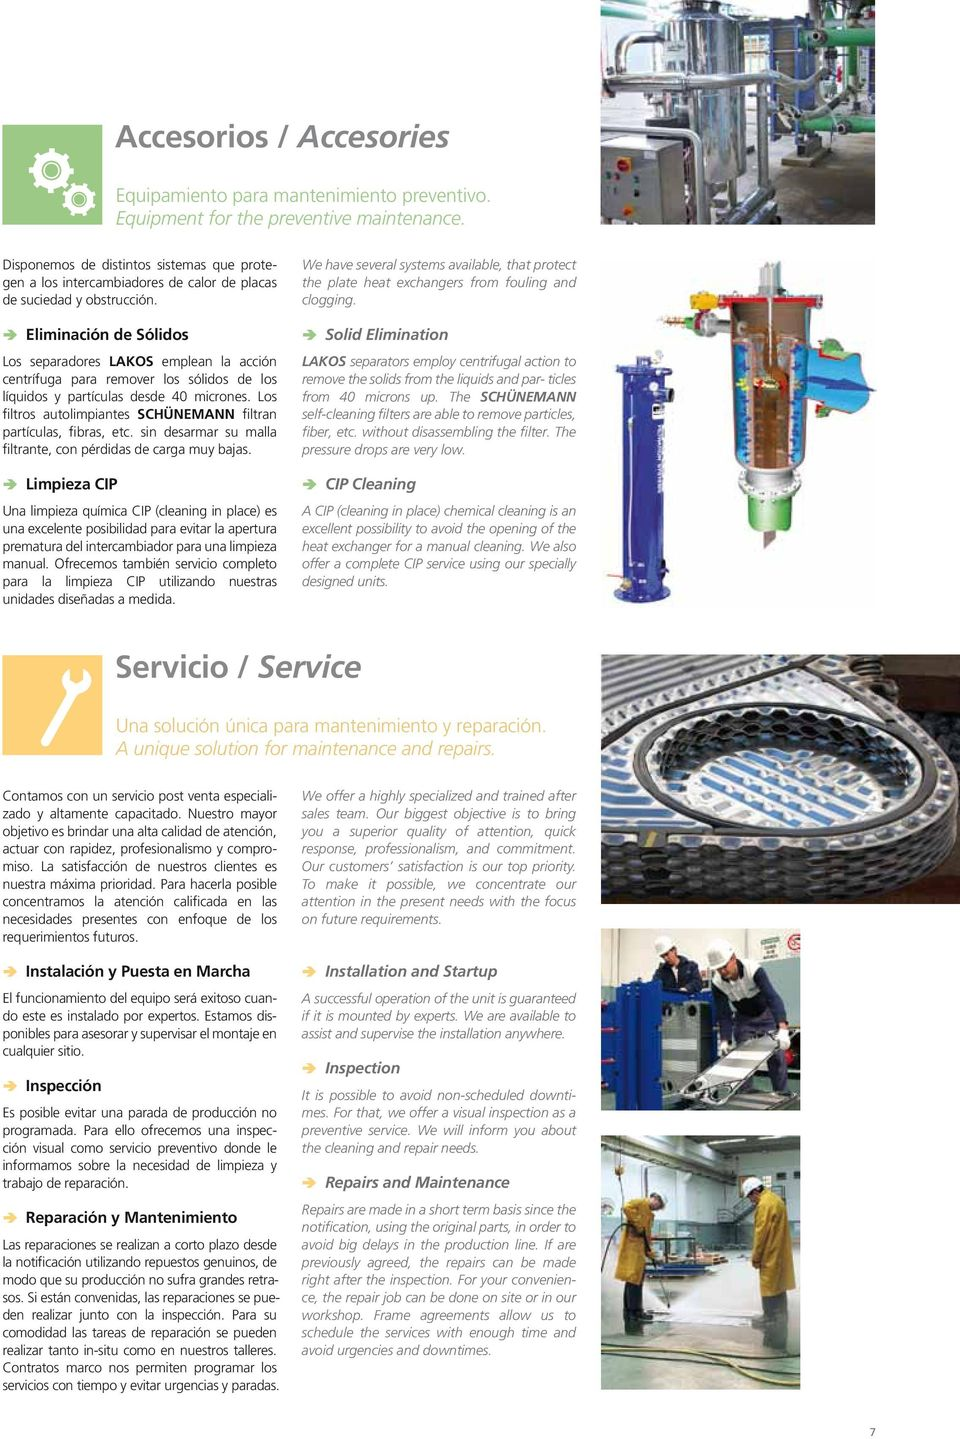 Intercambiadores de Calor de Placas Plate Heat Exchangers - PDF